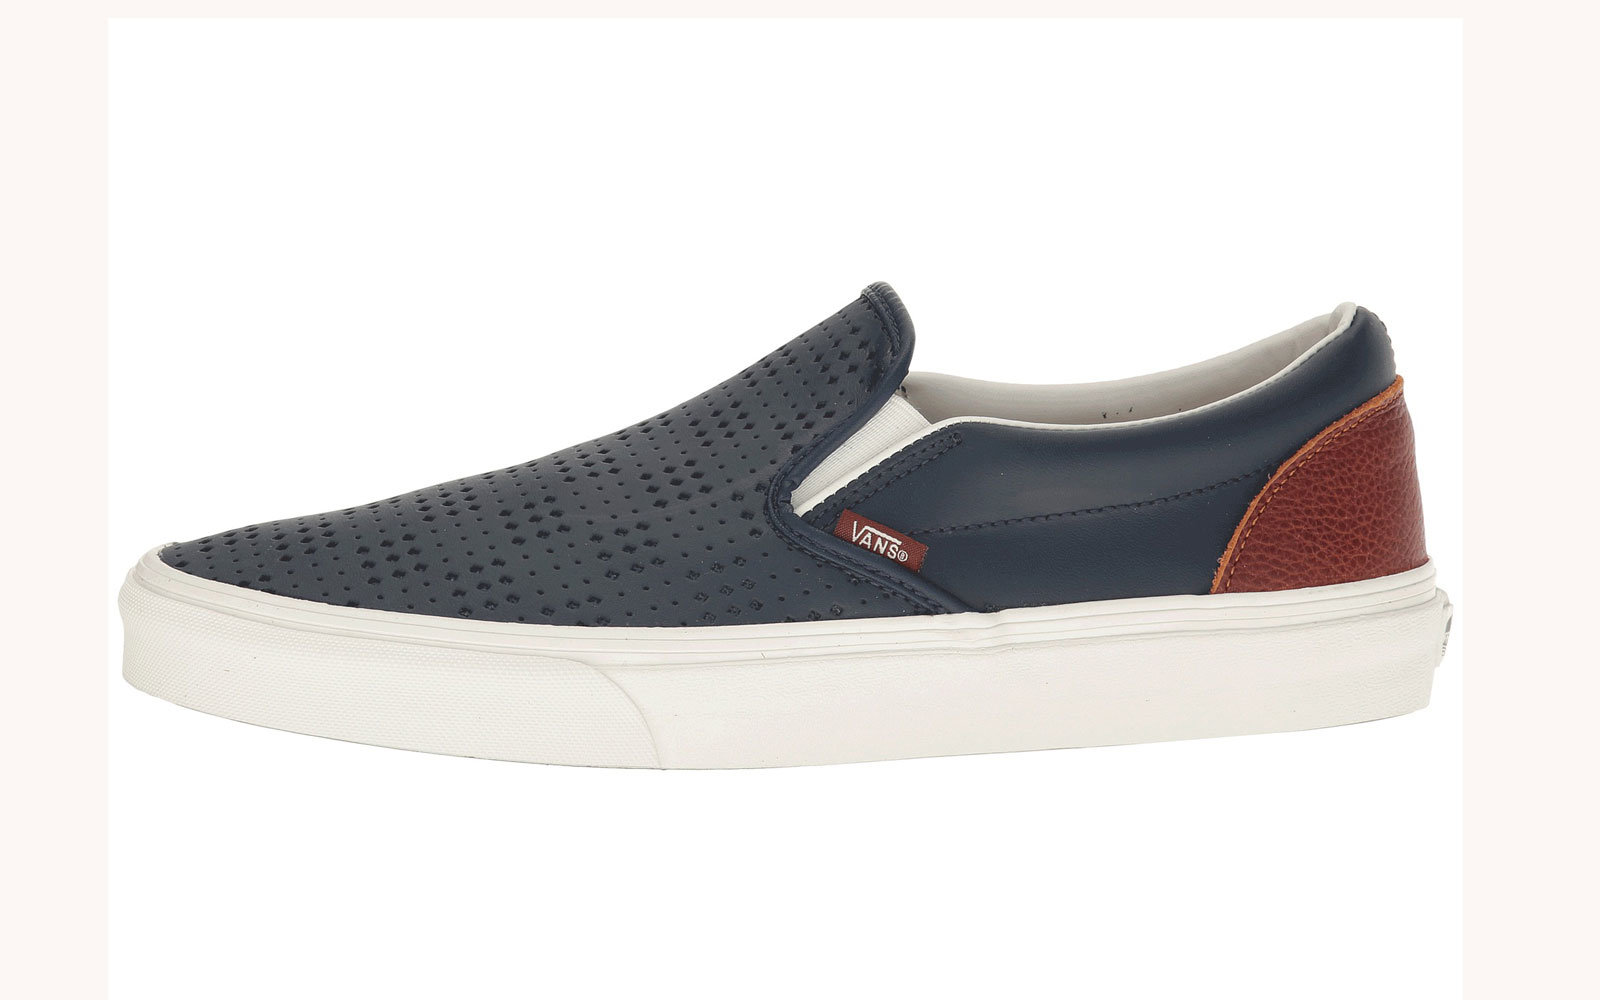 comfortable men's walking shoes made for travel | travel + leisure